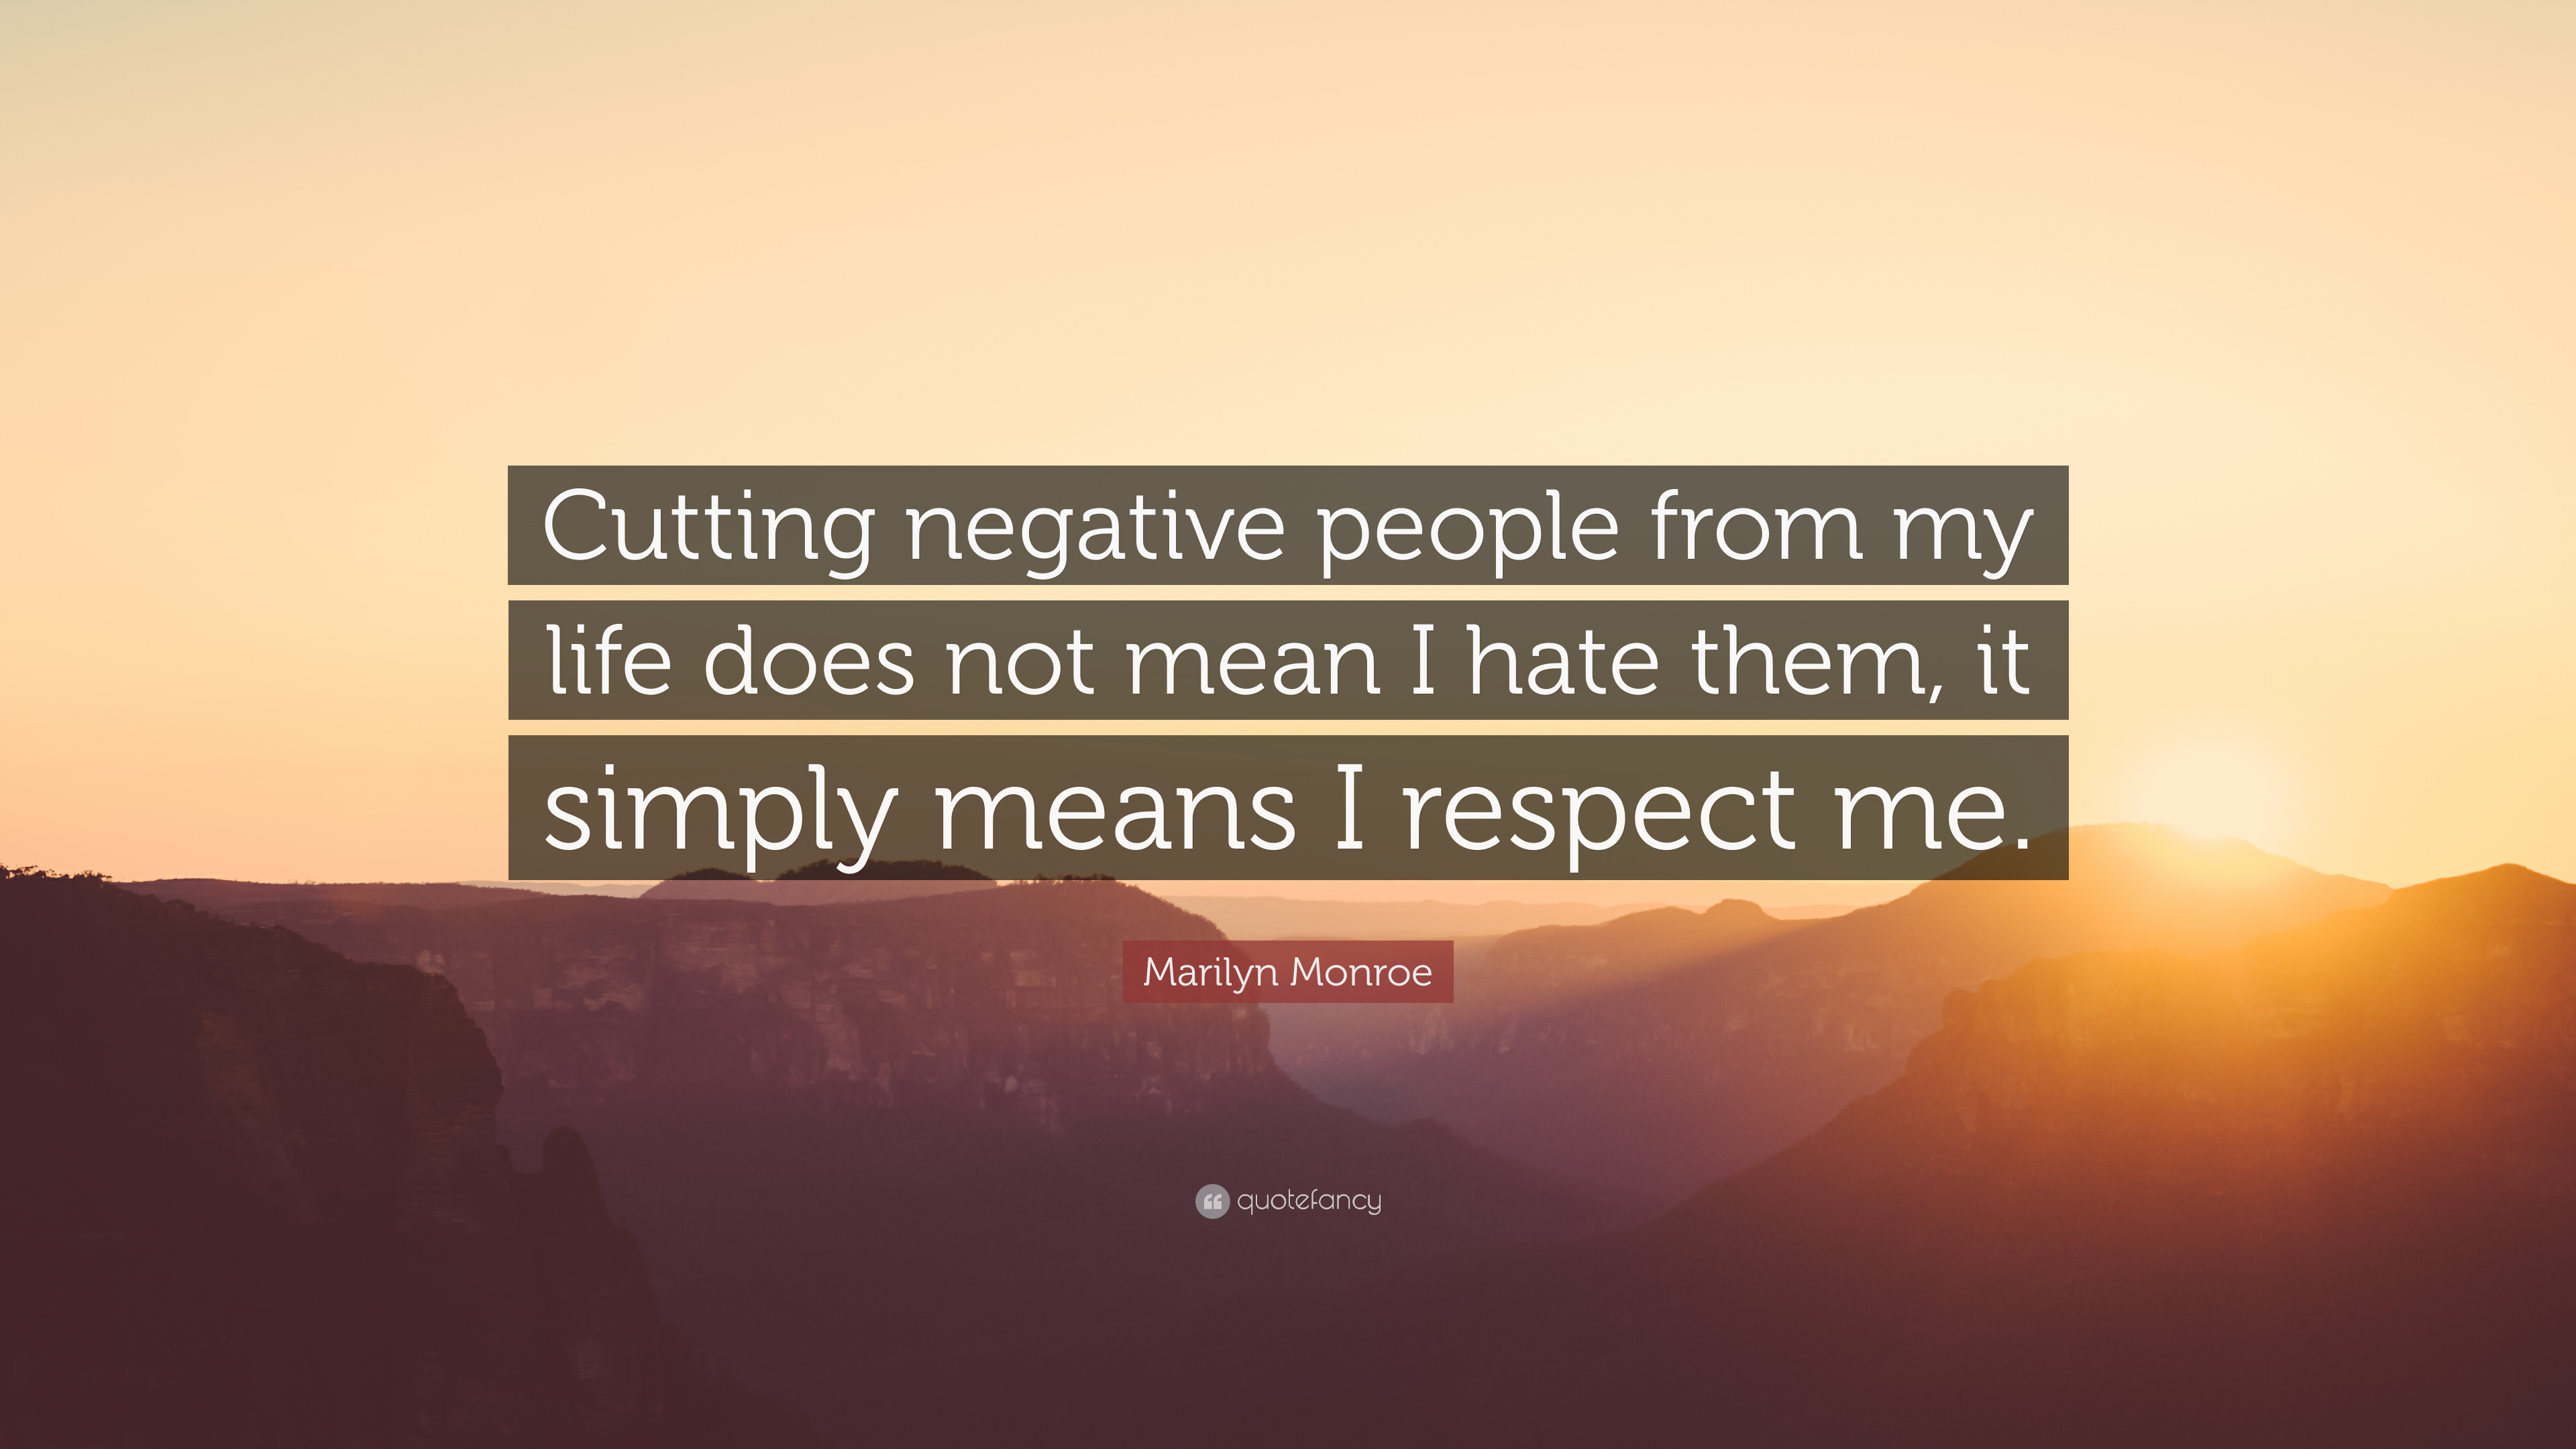 Marilyn Monroe Quote Cutting Negative People From My Life Does Not